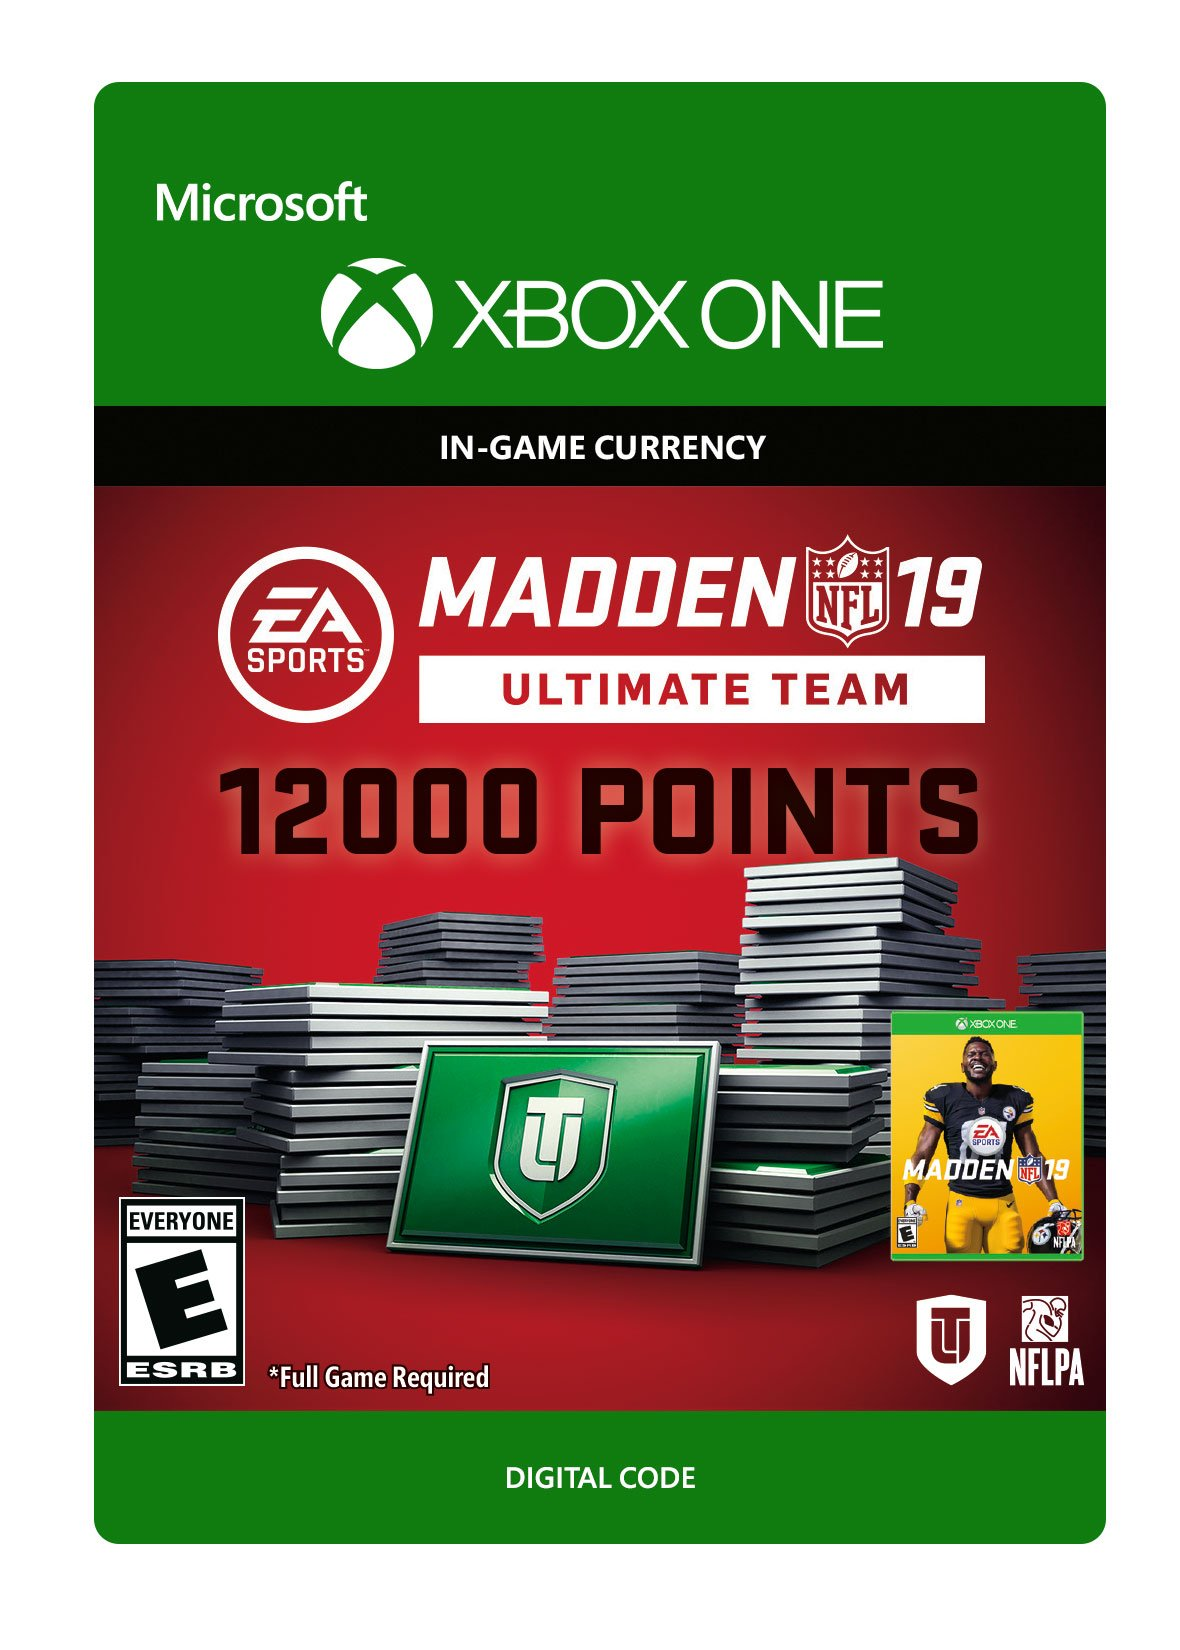 Madden NFL 19: MUT 12000 Madden Points Pack - Xbox One [Digital Code] by Electronic Arts (Image #1)